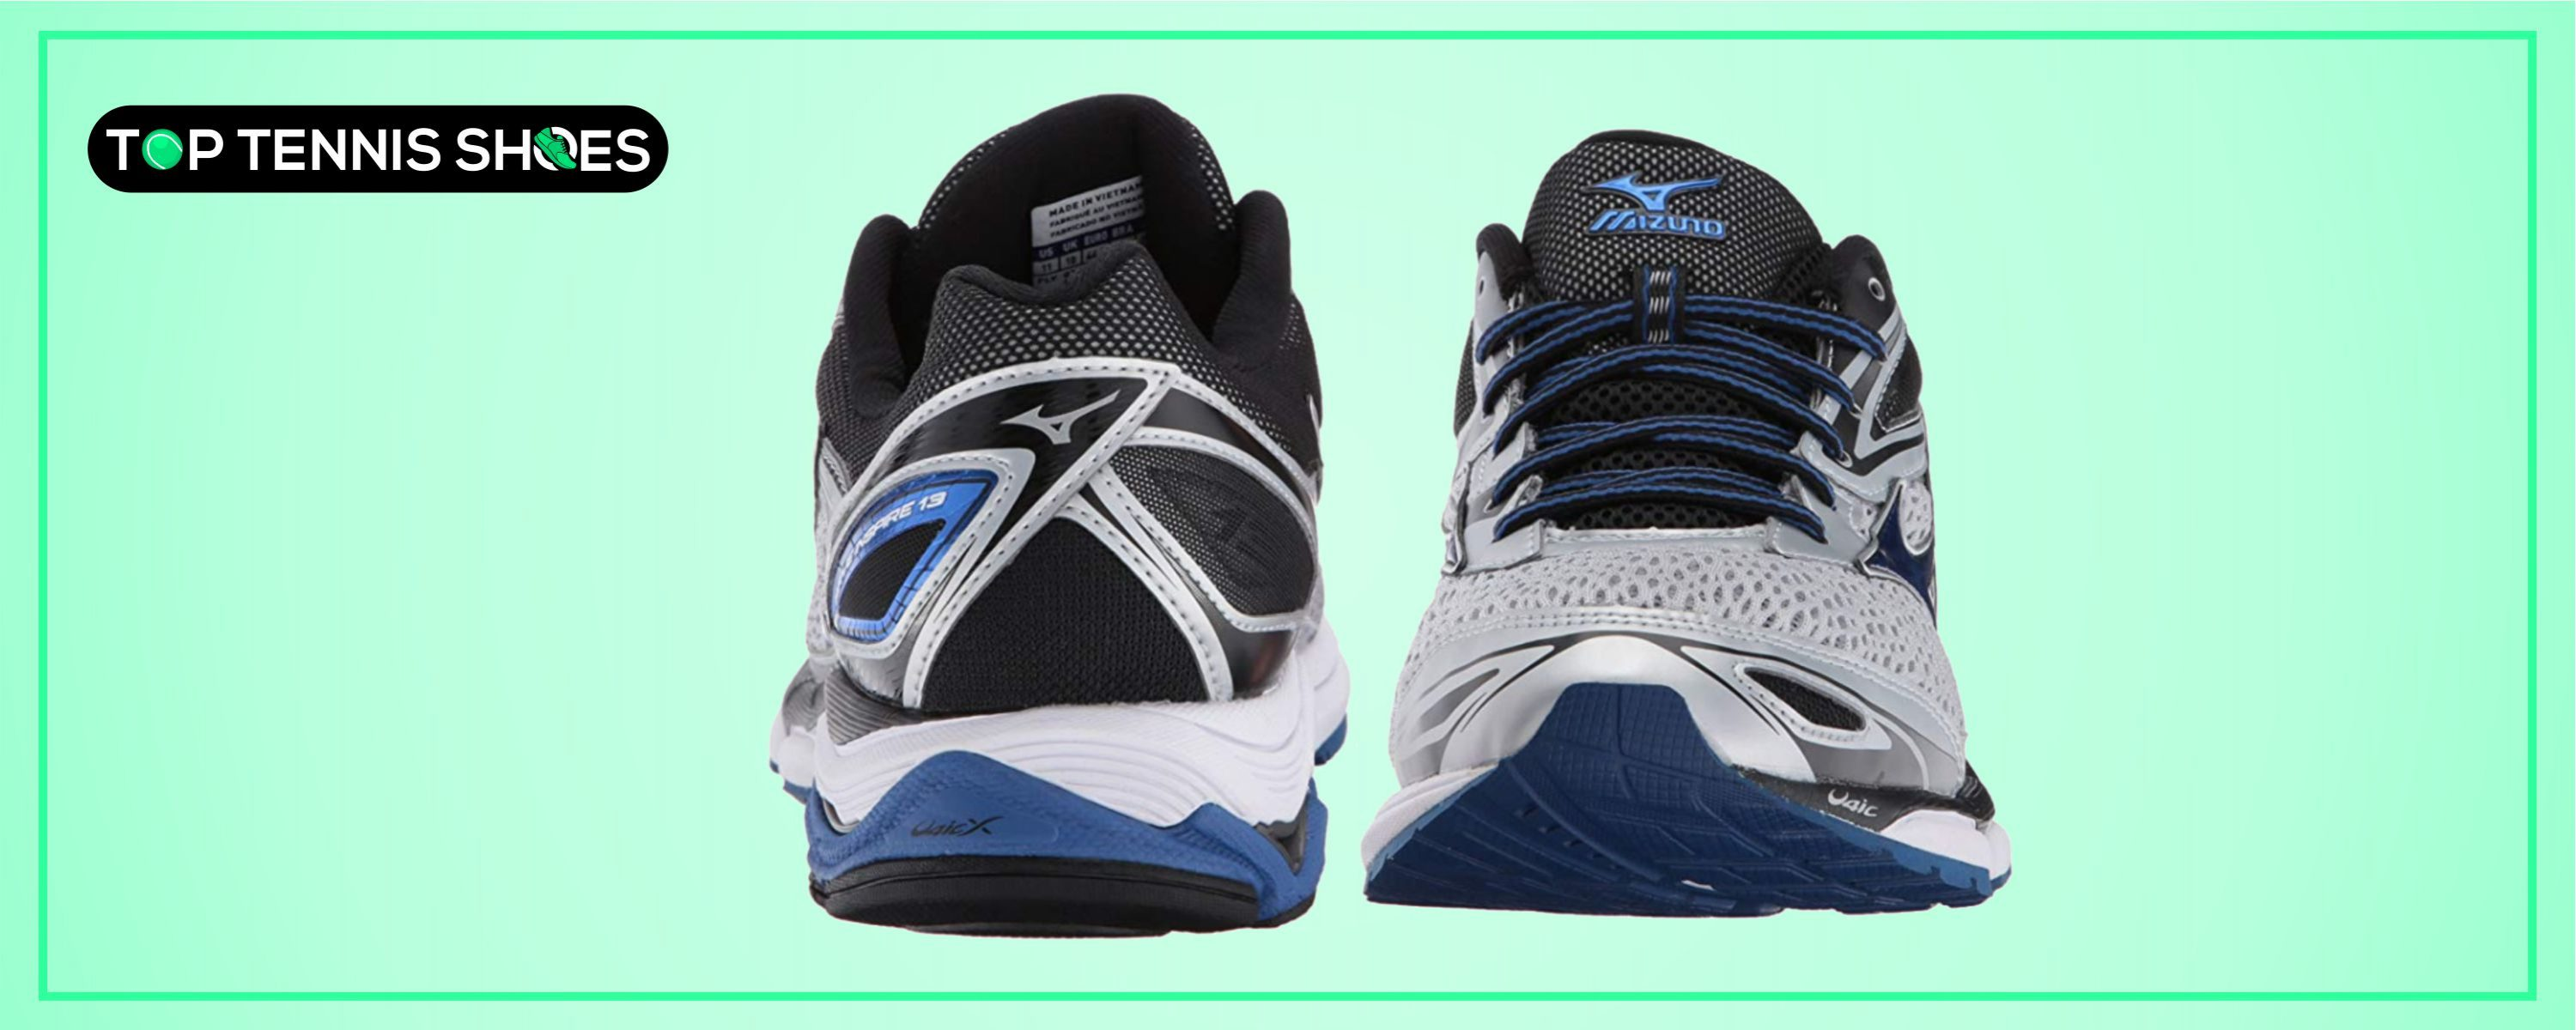 Top rated tennis shoes for flat feet